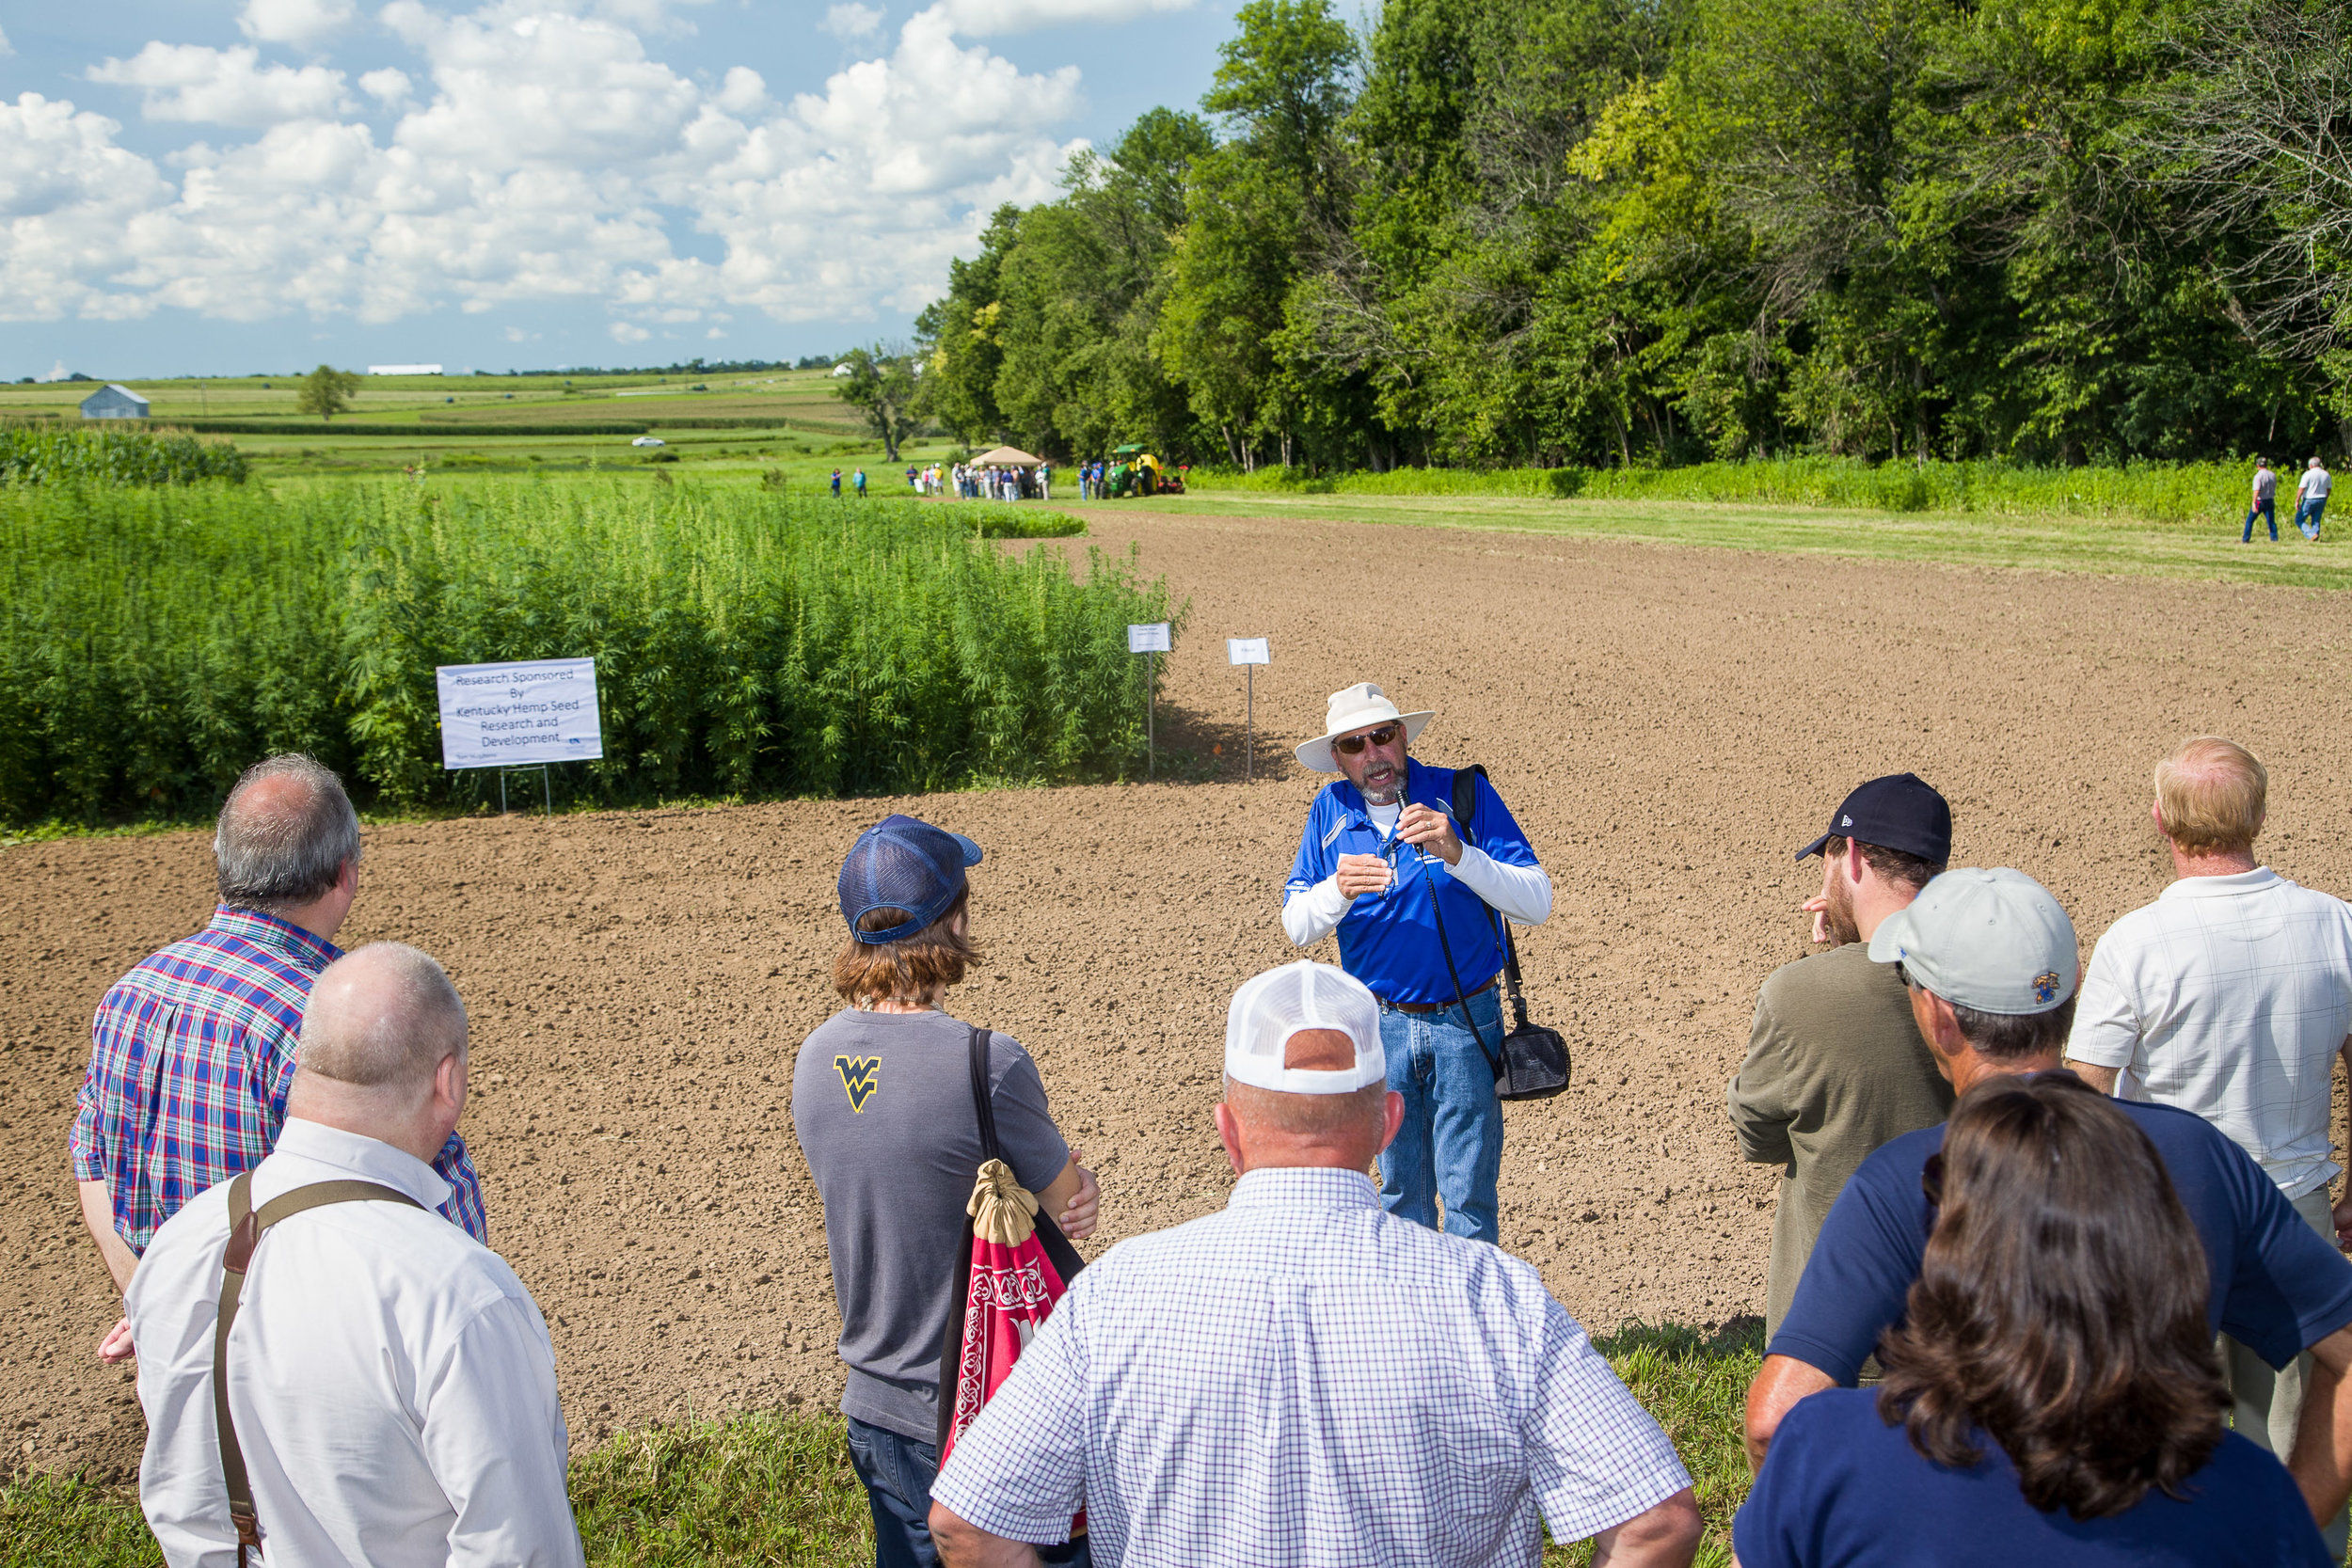 Industrial hemp field day hosted by University of Kentucky. Image by University of Kentucky